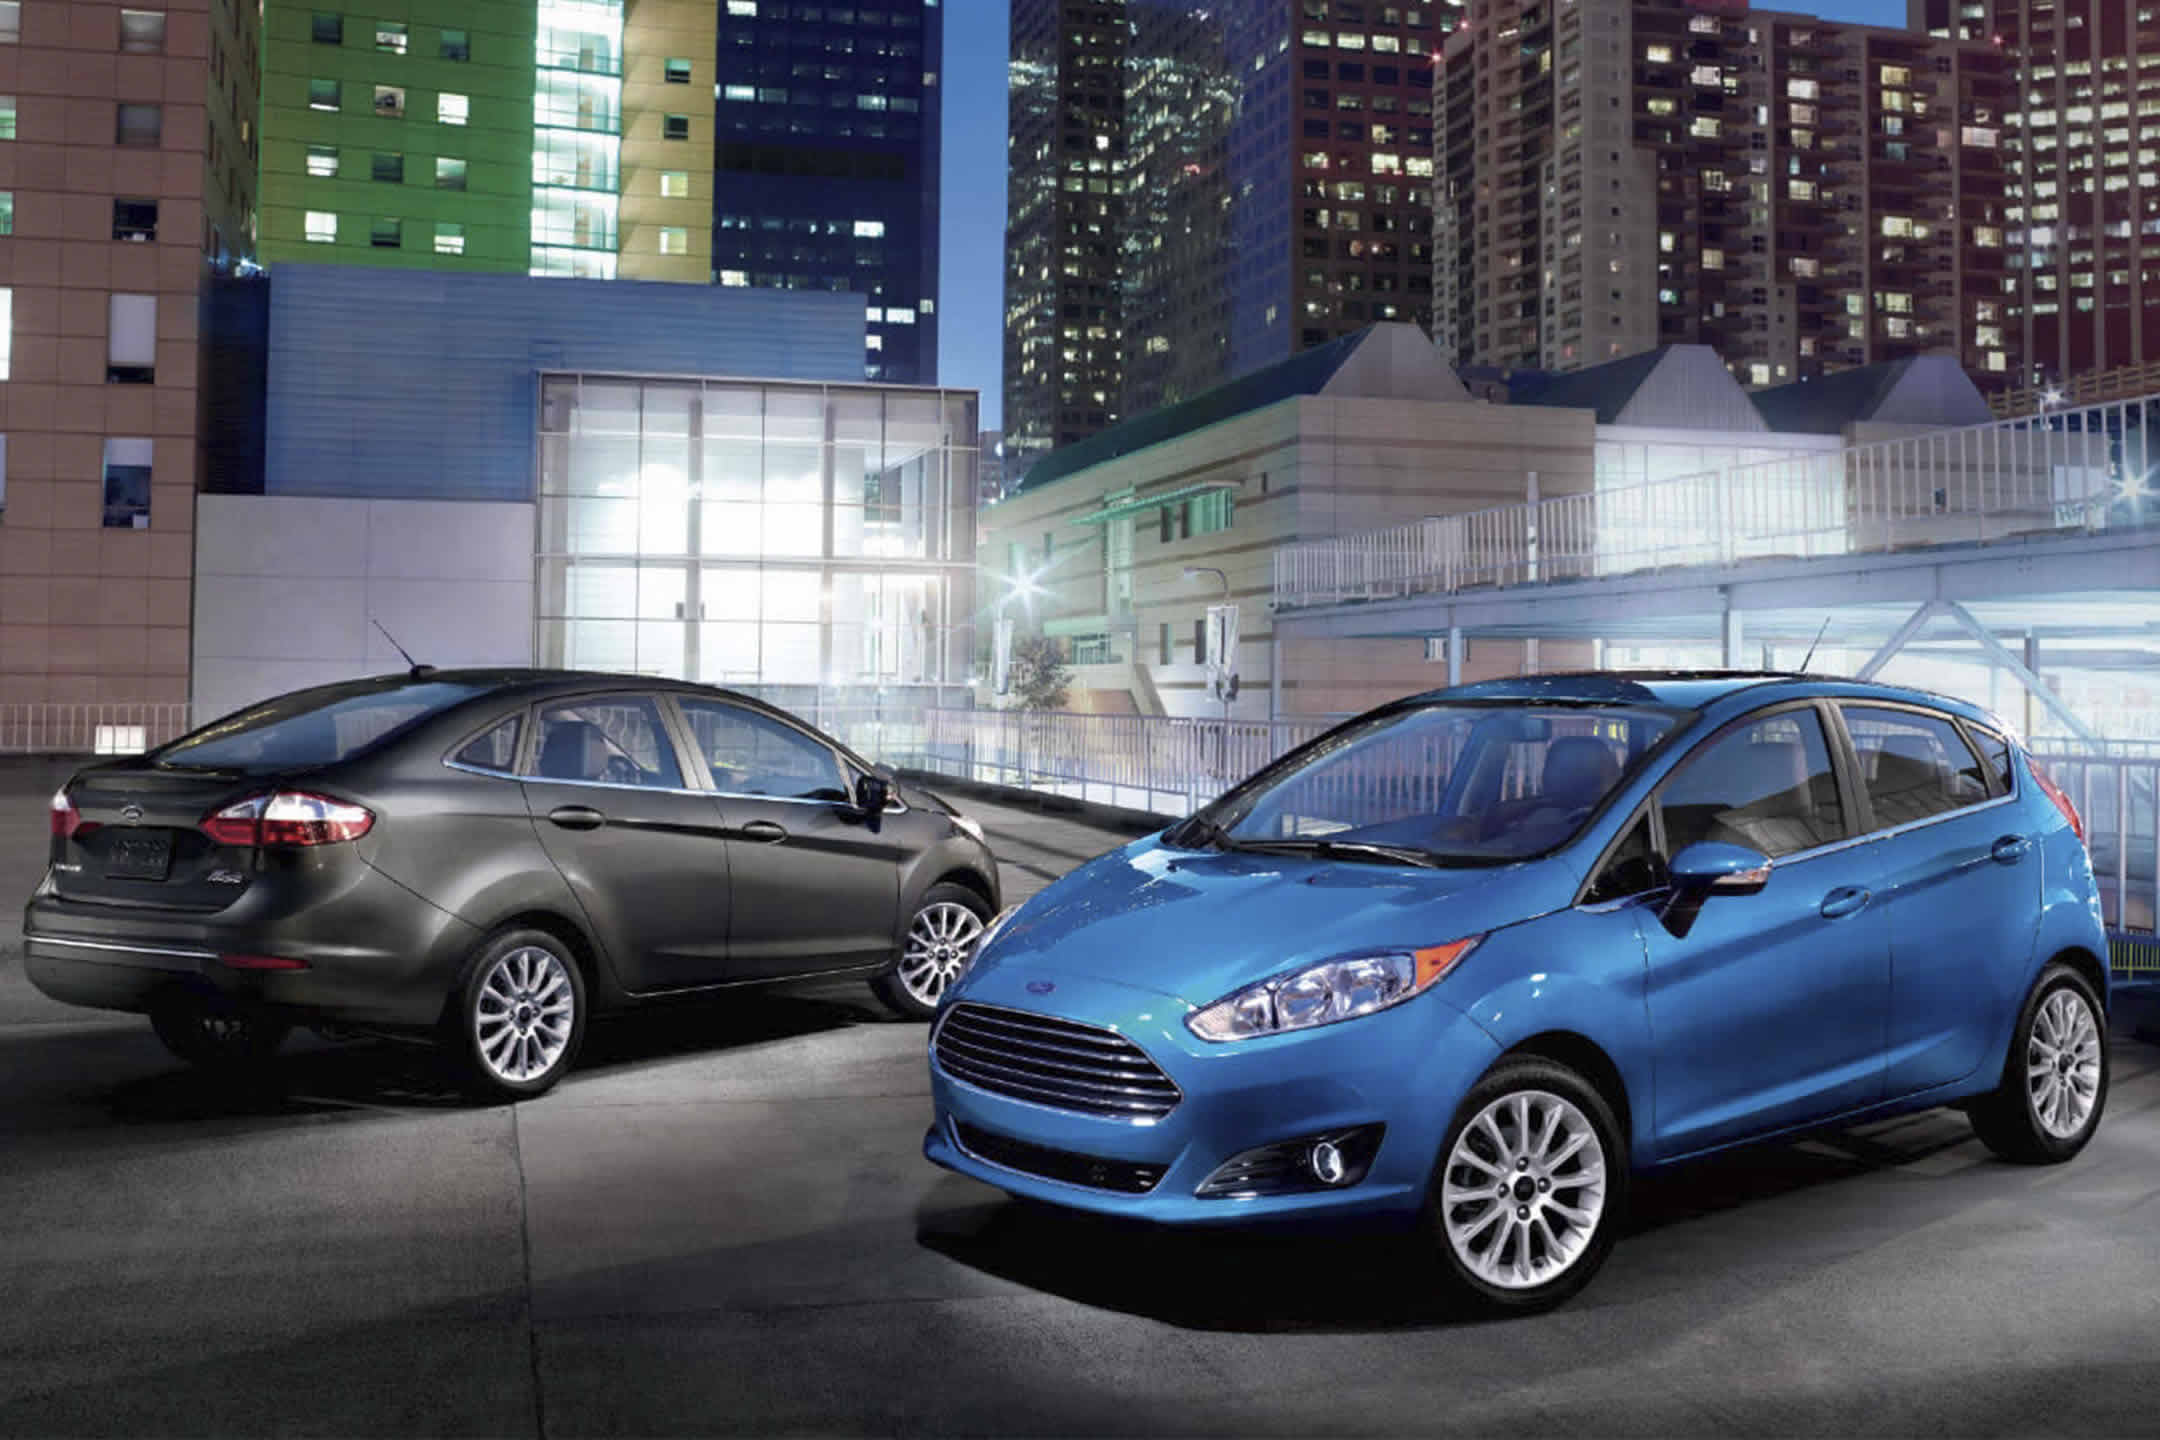 2017 ford fiesta overview the news wheel. Black Bedroom Furniture Sets. Home Design Ideas